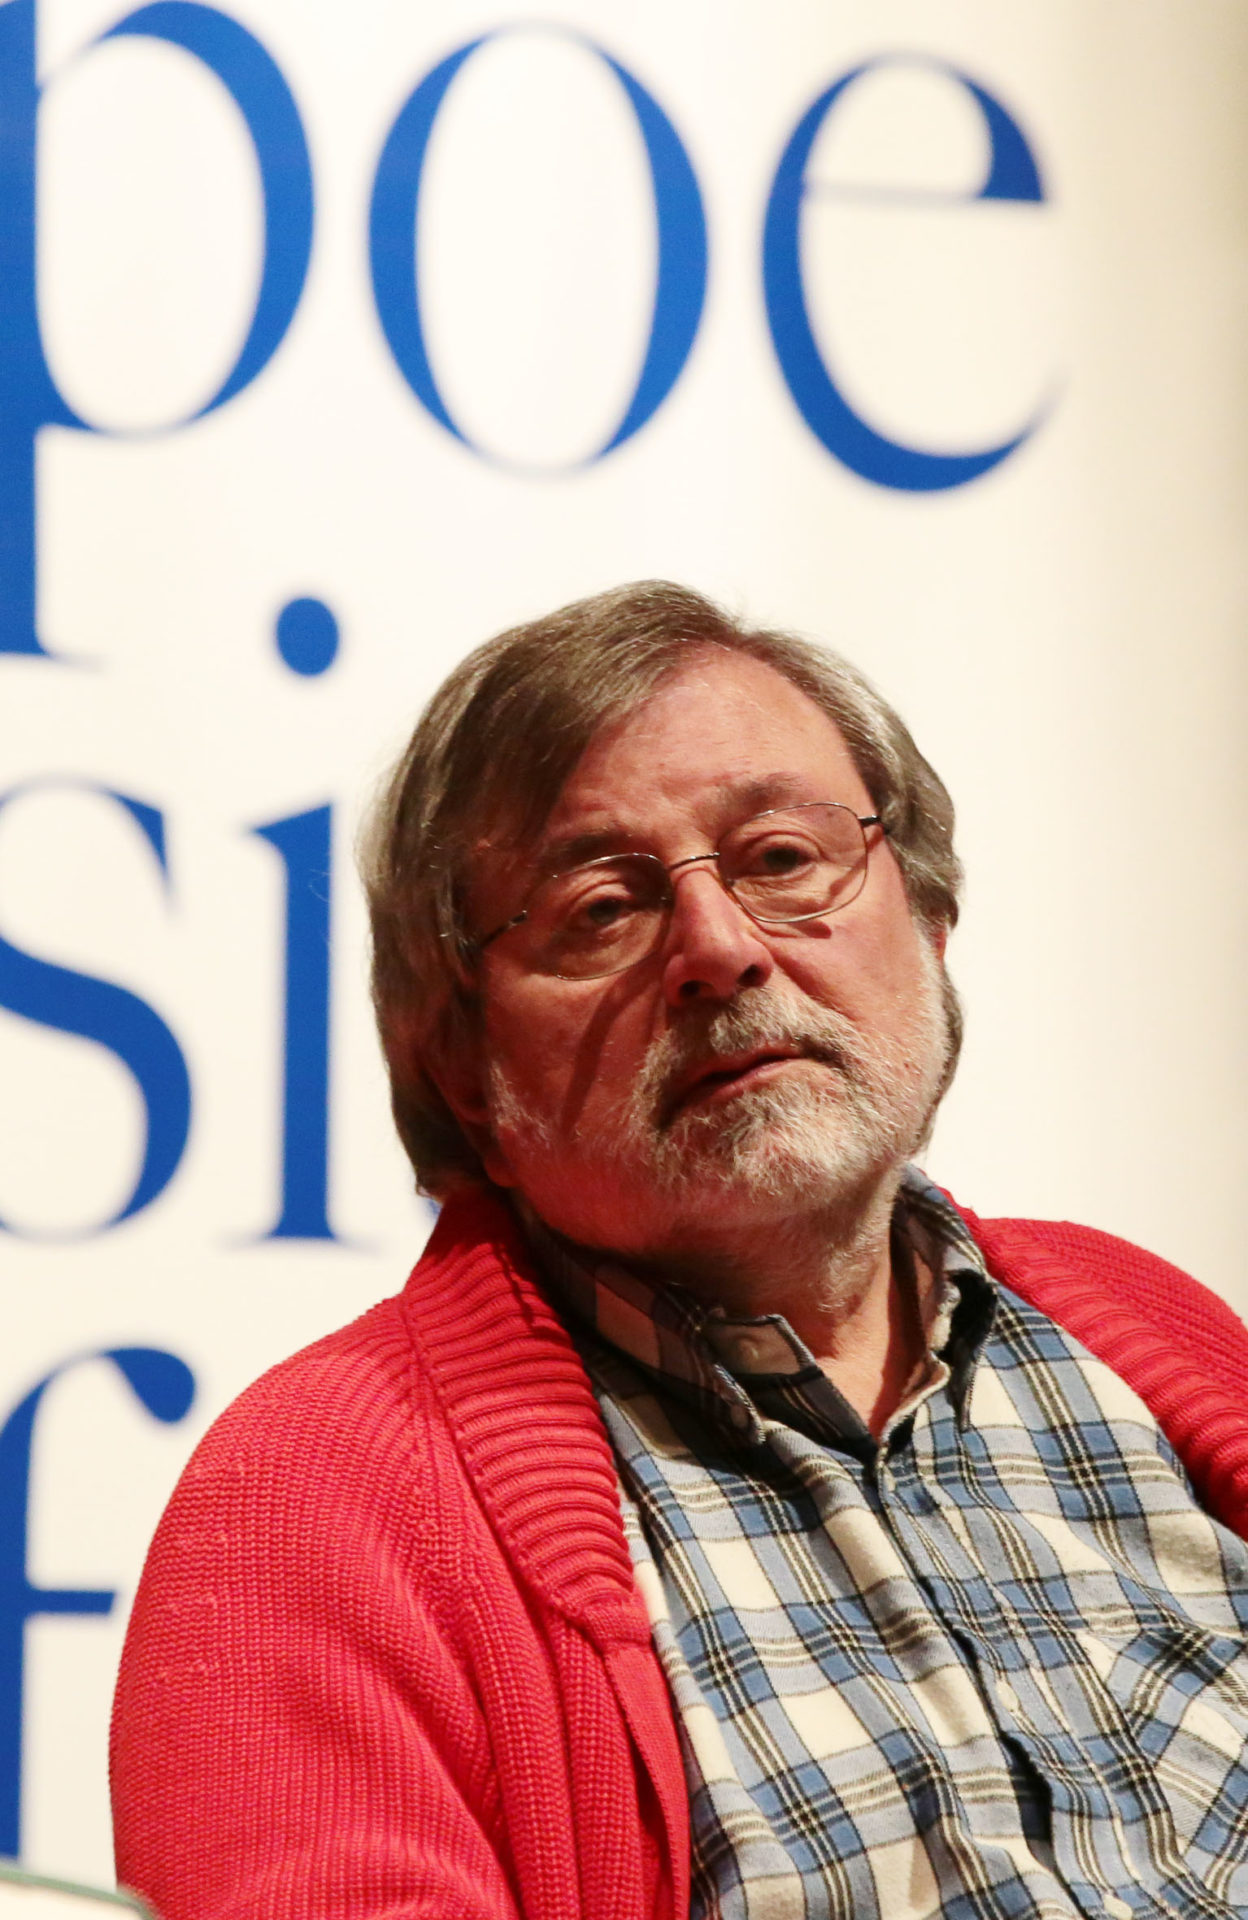 Francesco Guccini - photo © Elisabetta Baracchi